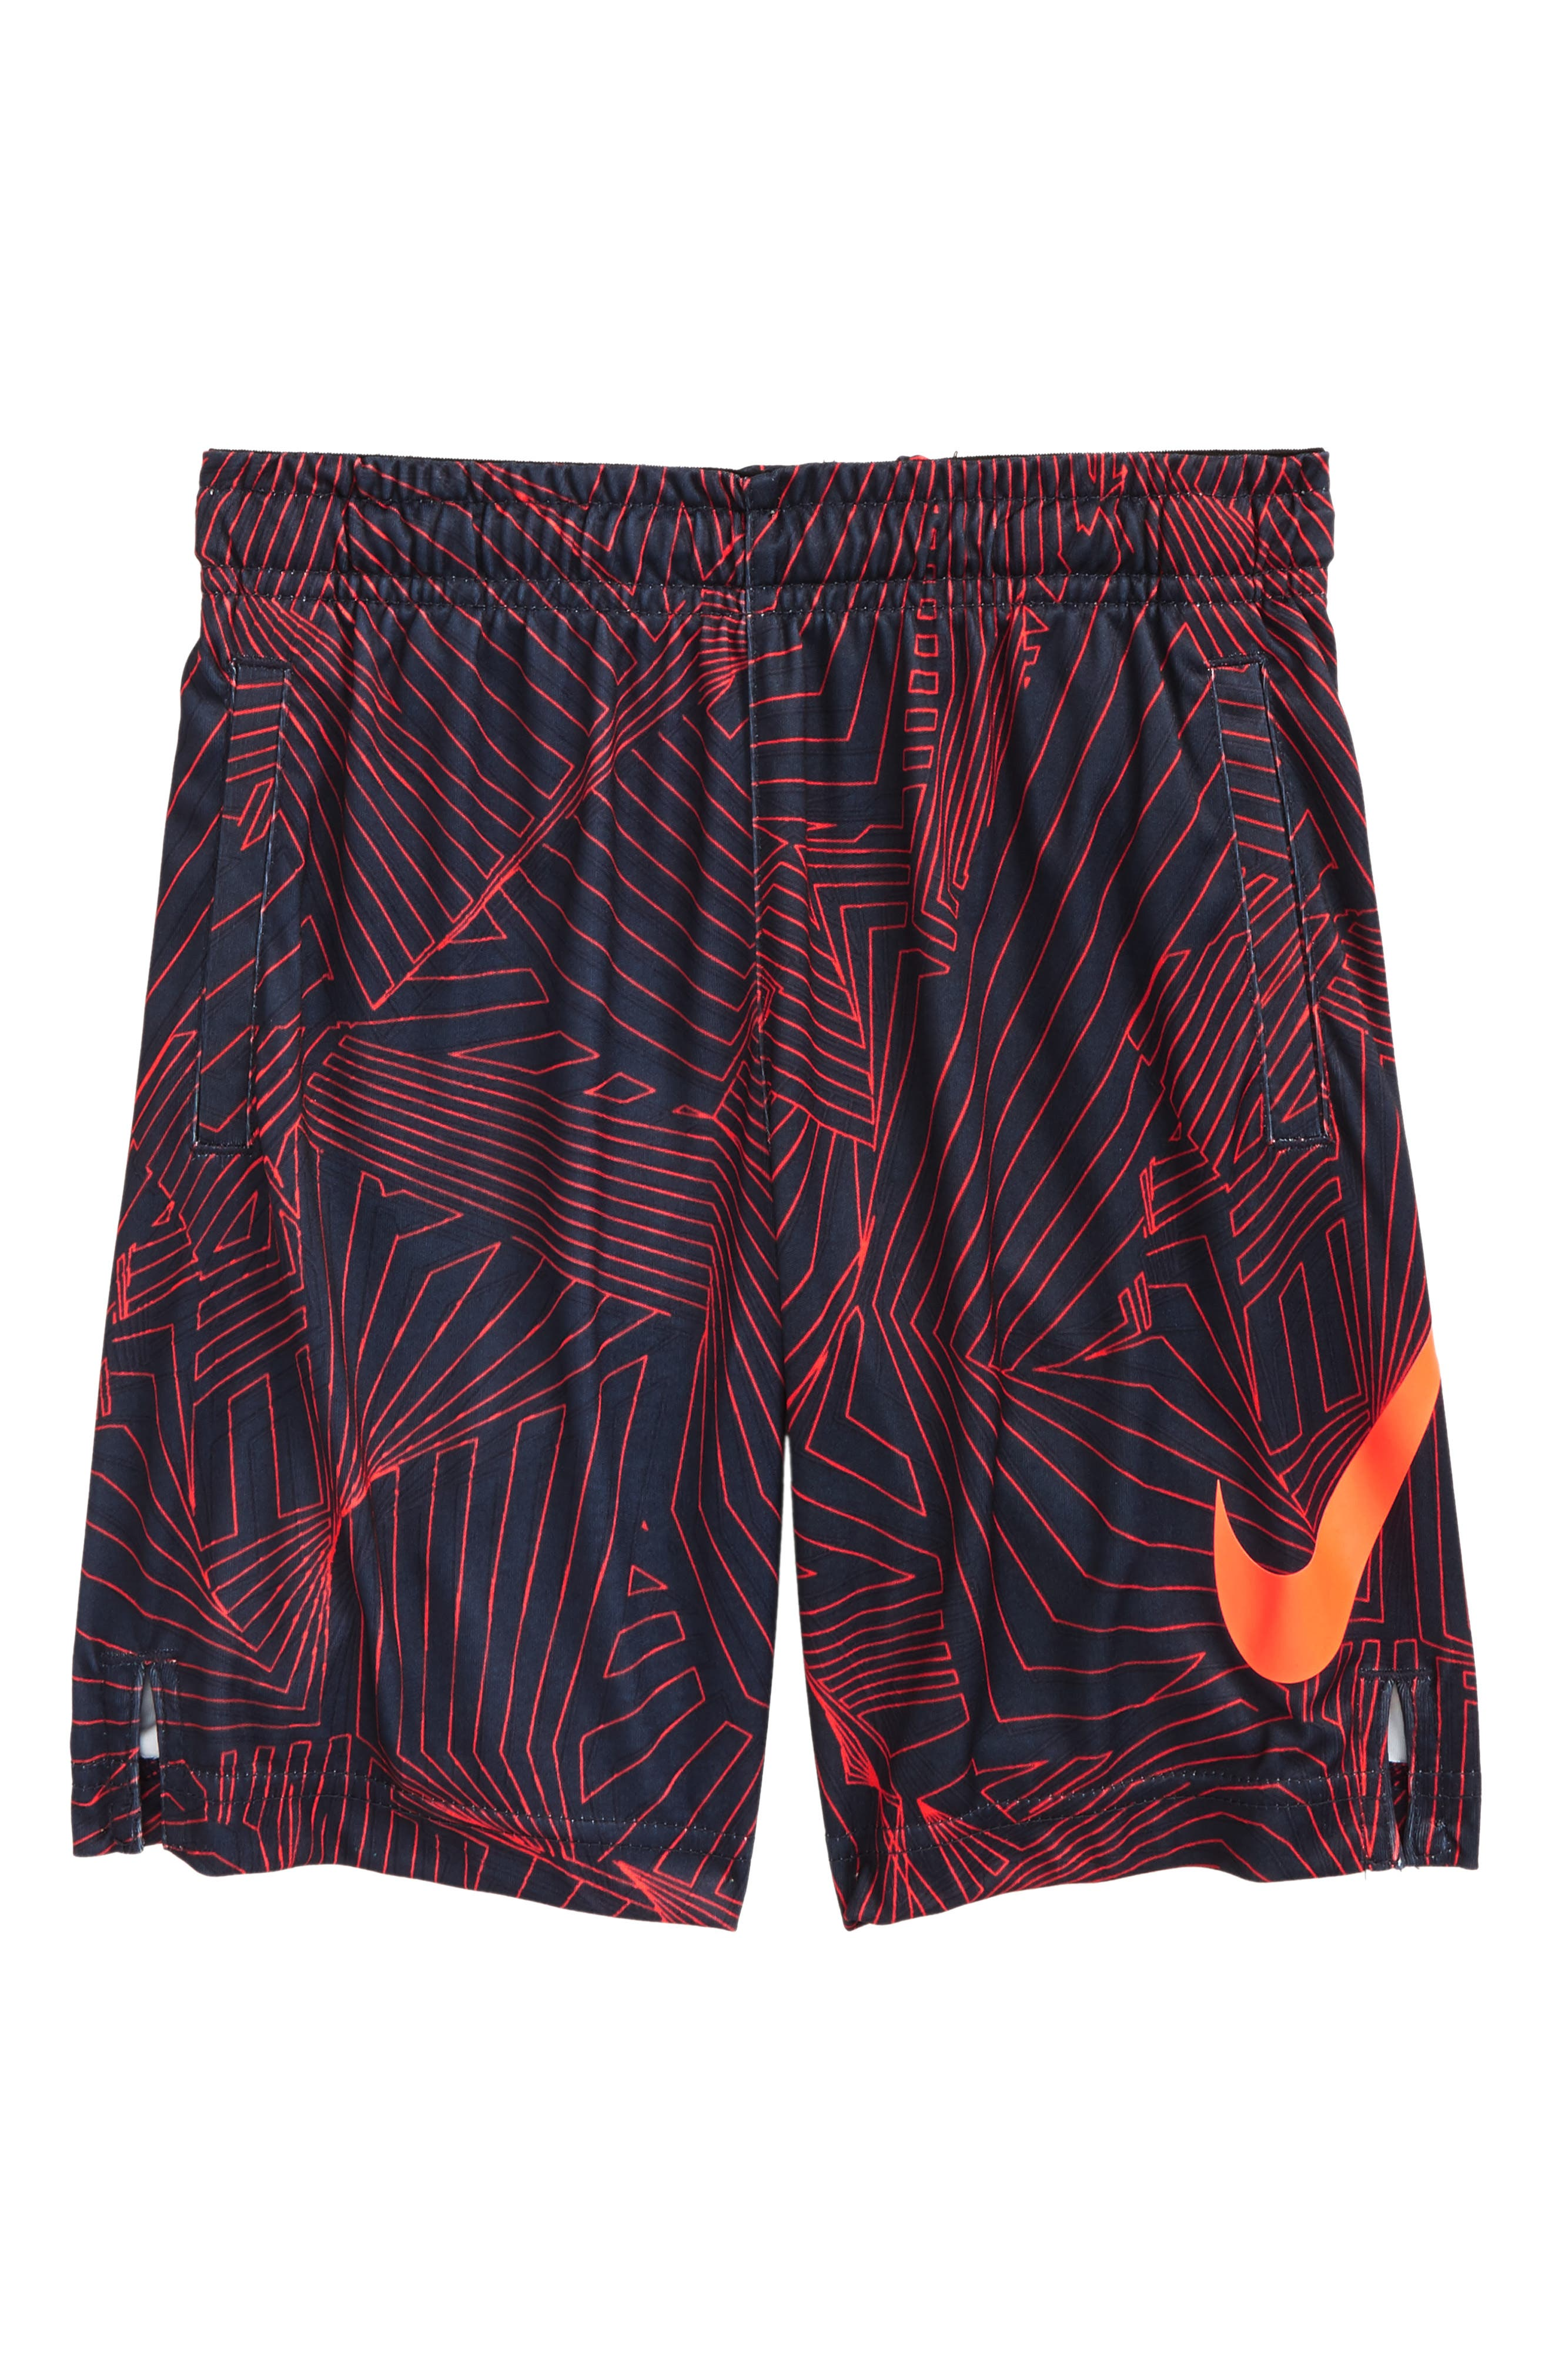 Alternate Image 1 Selected - Nike AOP Dry Shorts (Toddler Boys & Little Boys)